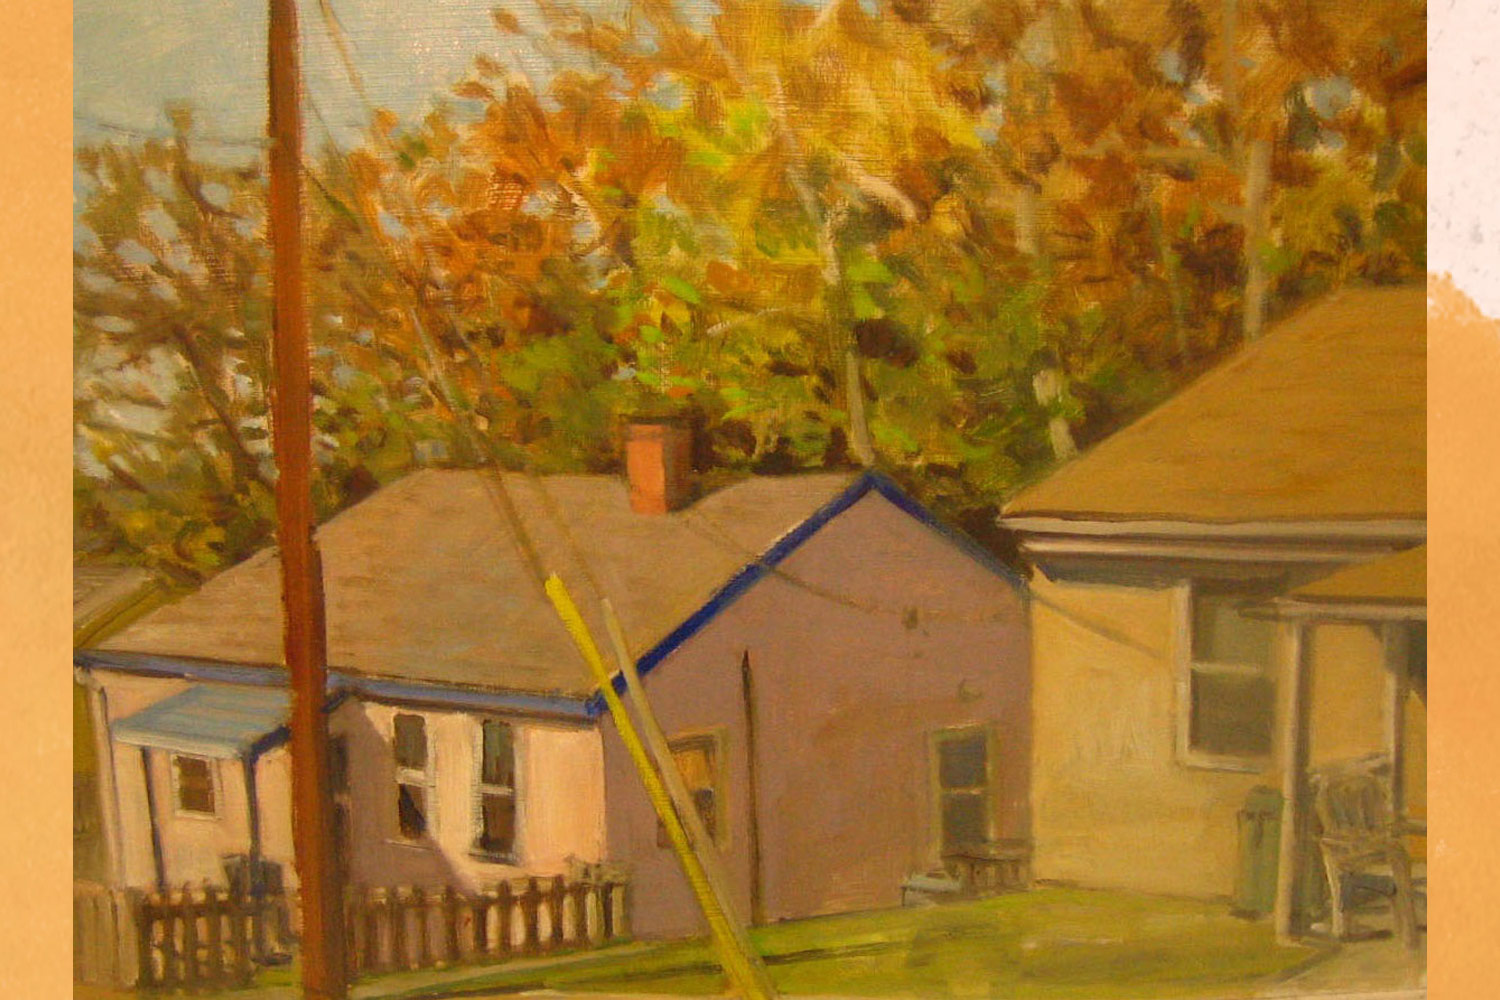 This painting shows Rayon Street in the Belmont neighborhood as it was on Nov. 5, 2015. During World War II, the street was home to housing designed by Frank Ix & Sons to attract and retain workers for their textile factory.